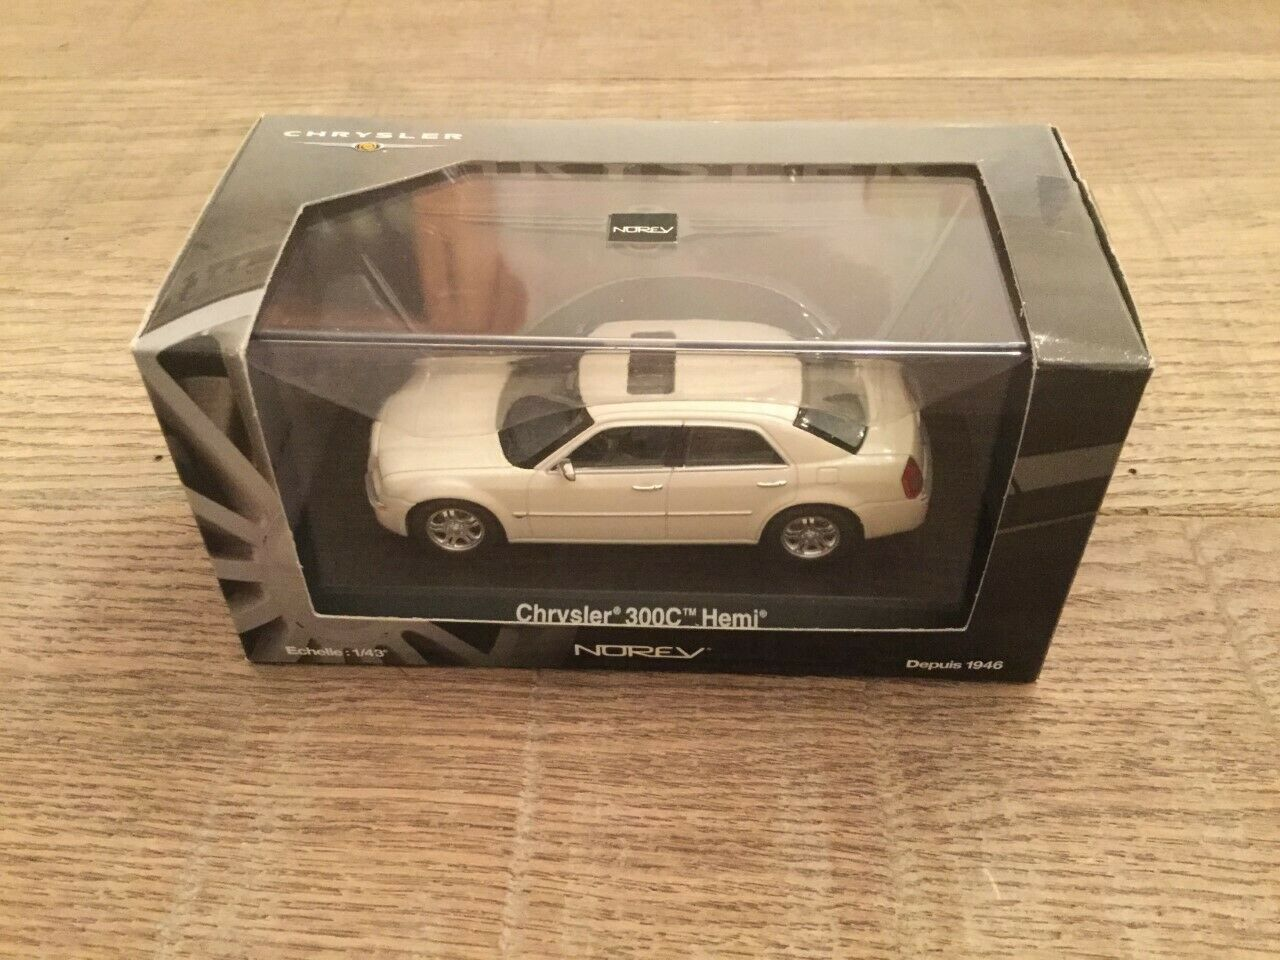 Norev 1 43 Chrysler 300 C Cool Vanilla n° 940010 very nice and exclusive